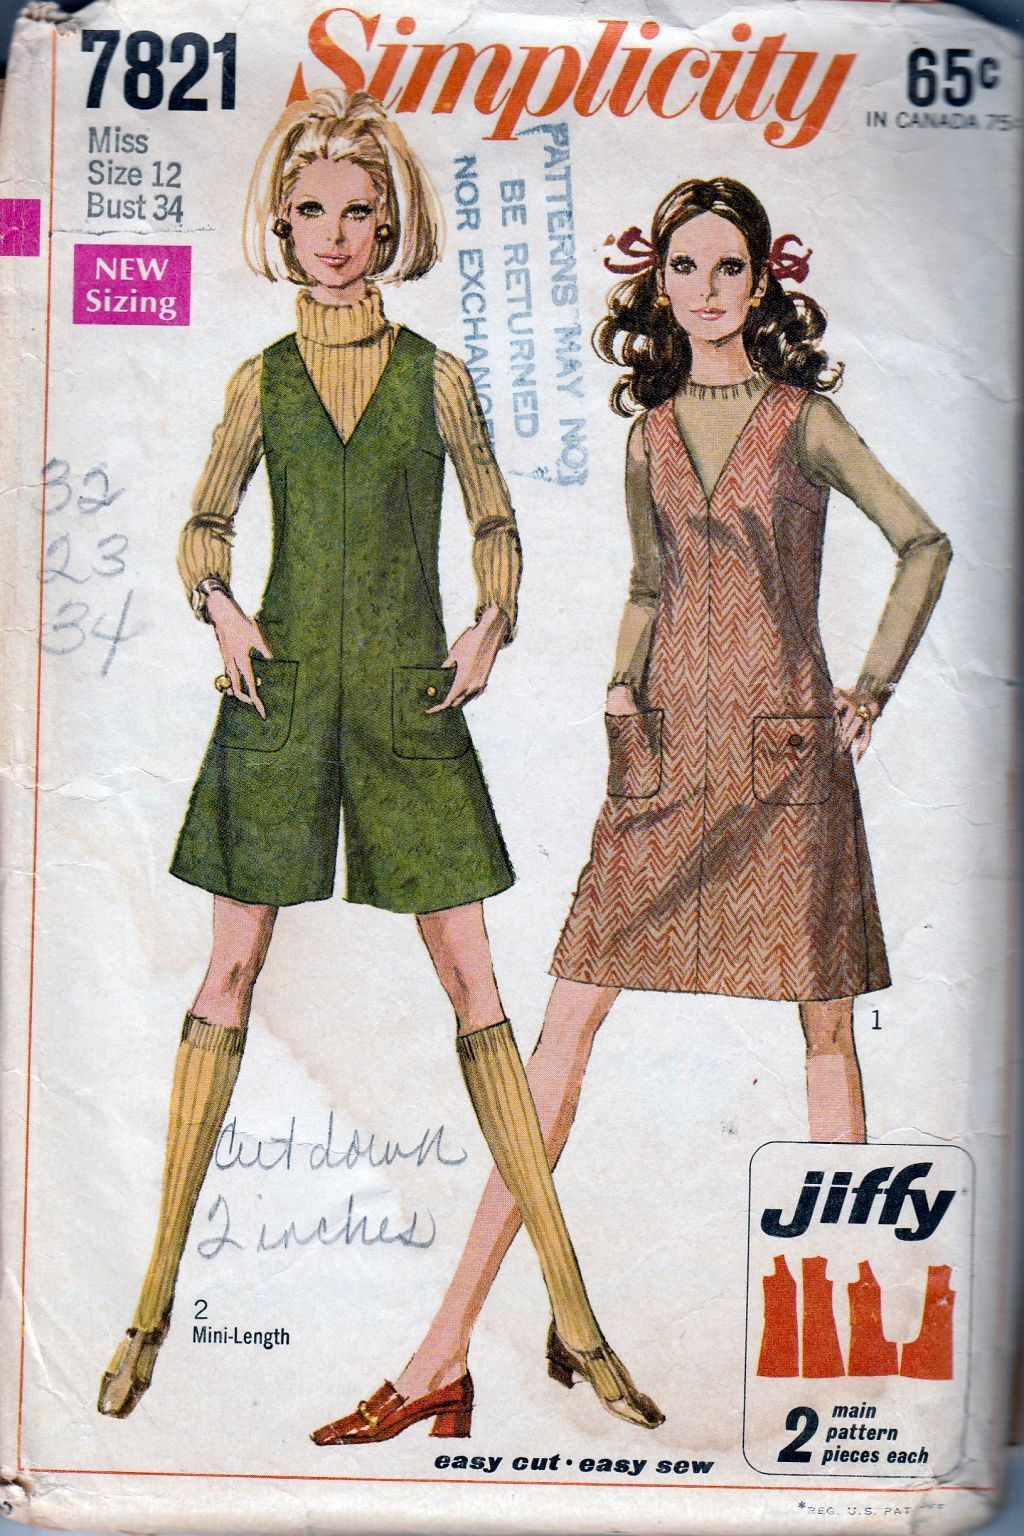 Simplicity 7821 Ladies Jiffy Jumper Dress Mini Pant Jumper Vintage 1960's Pattern - VintageStitching - Vintage Sewing Patterns